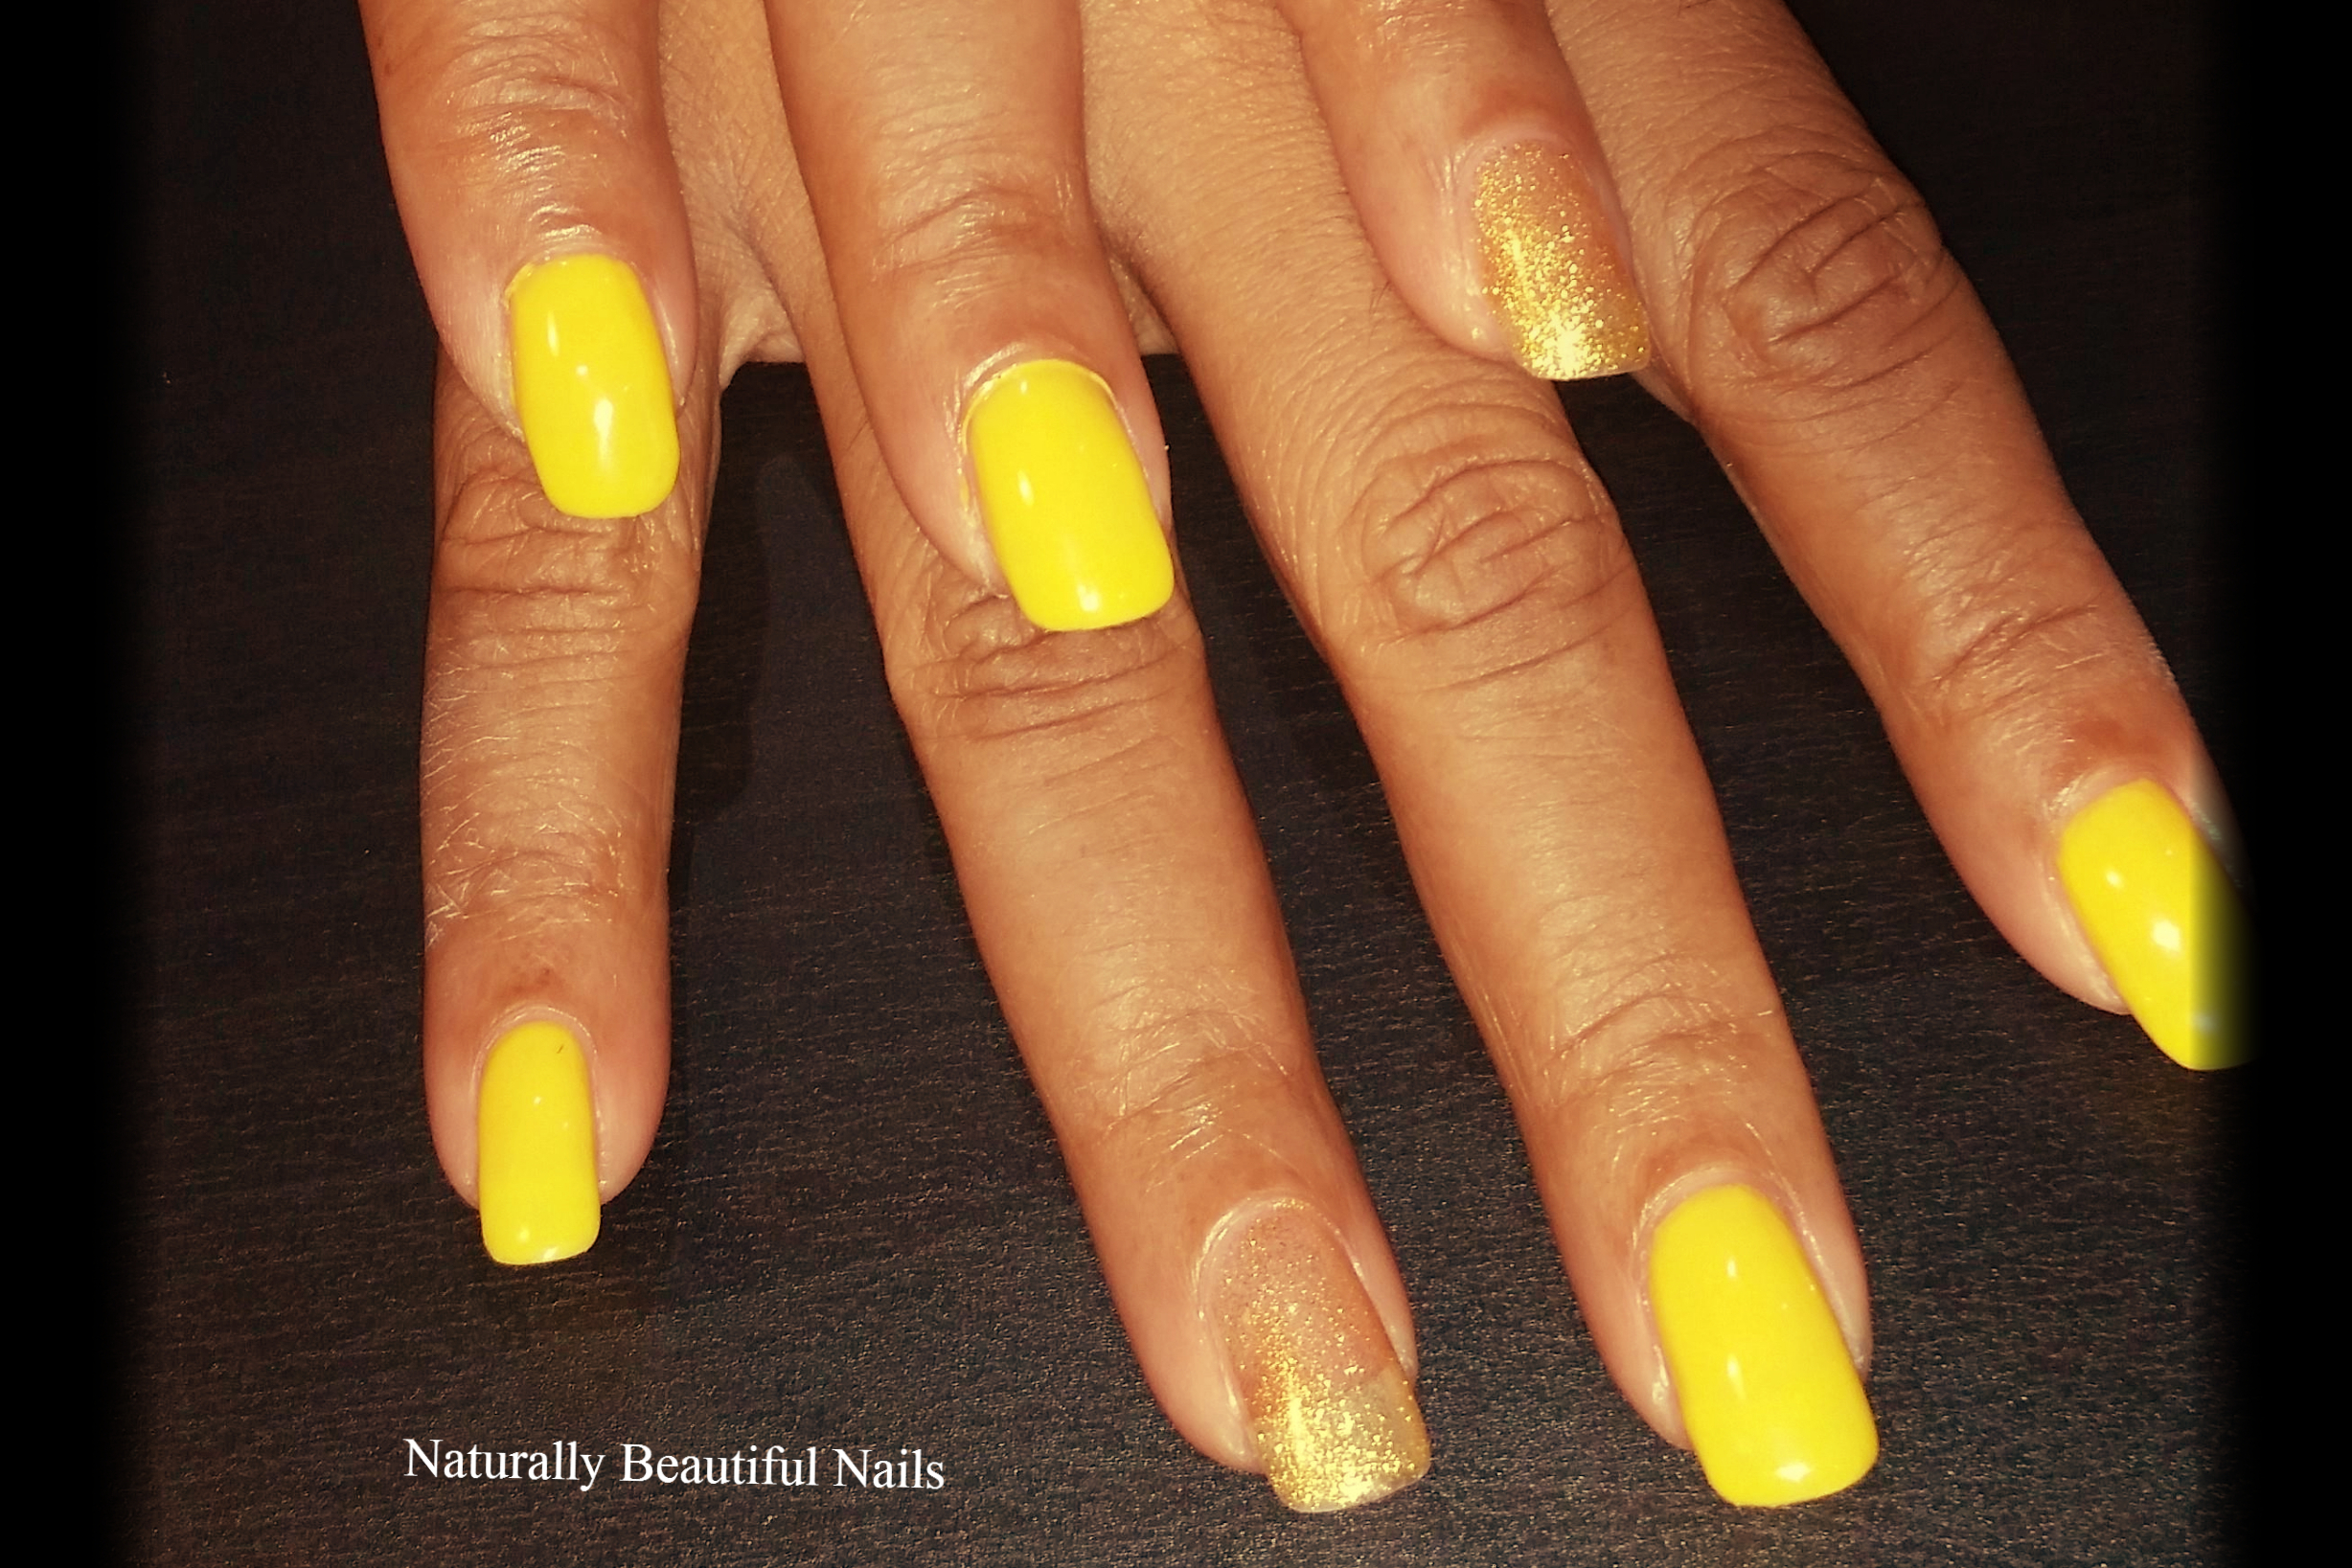 Naturally Beautiful Nails (Dba Nbn Studio) In Charlotte NC | Vagaro